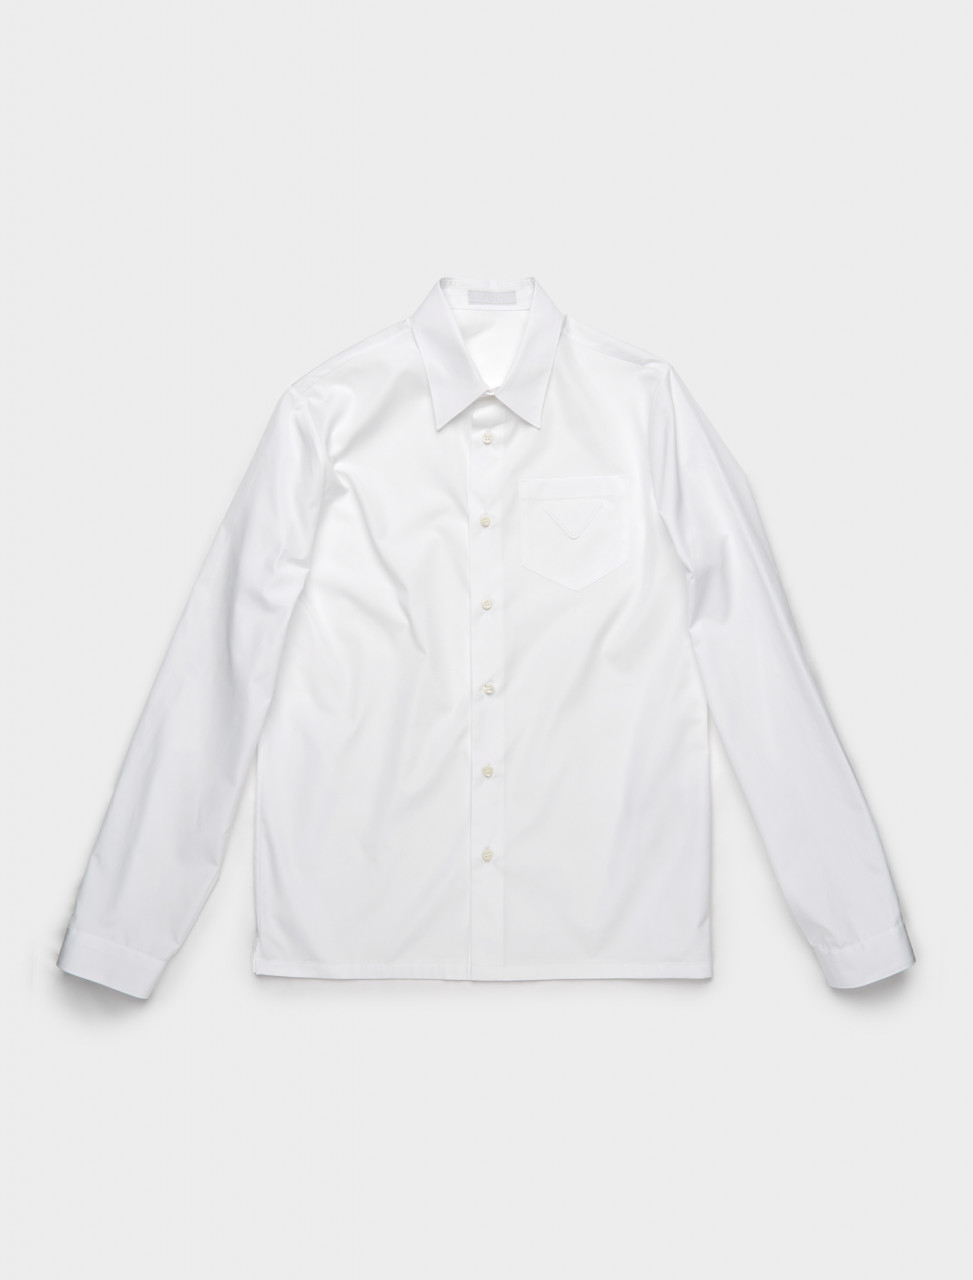 SC541-F0009 PRADA COTTON SHIRT WHITE